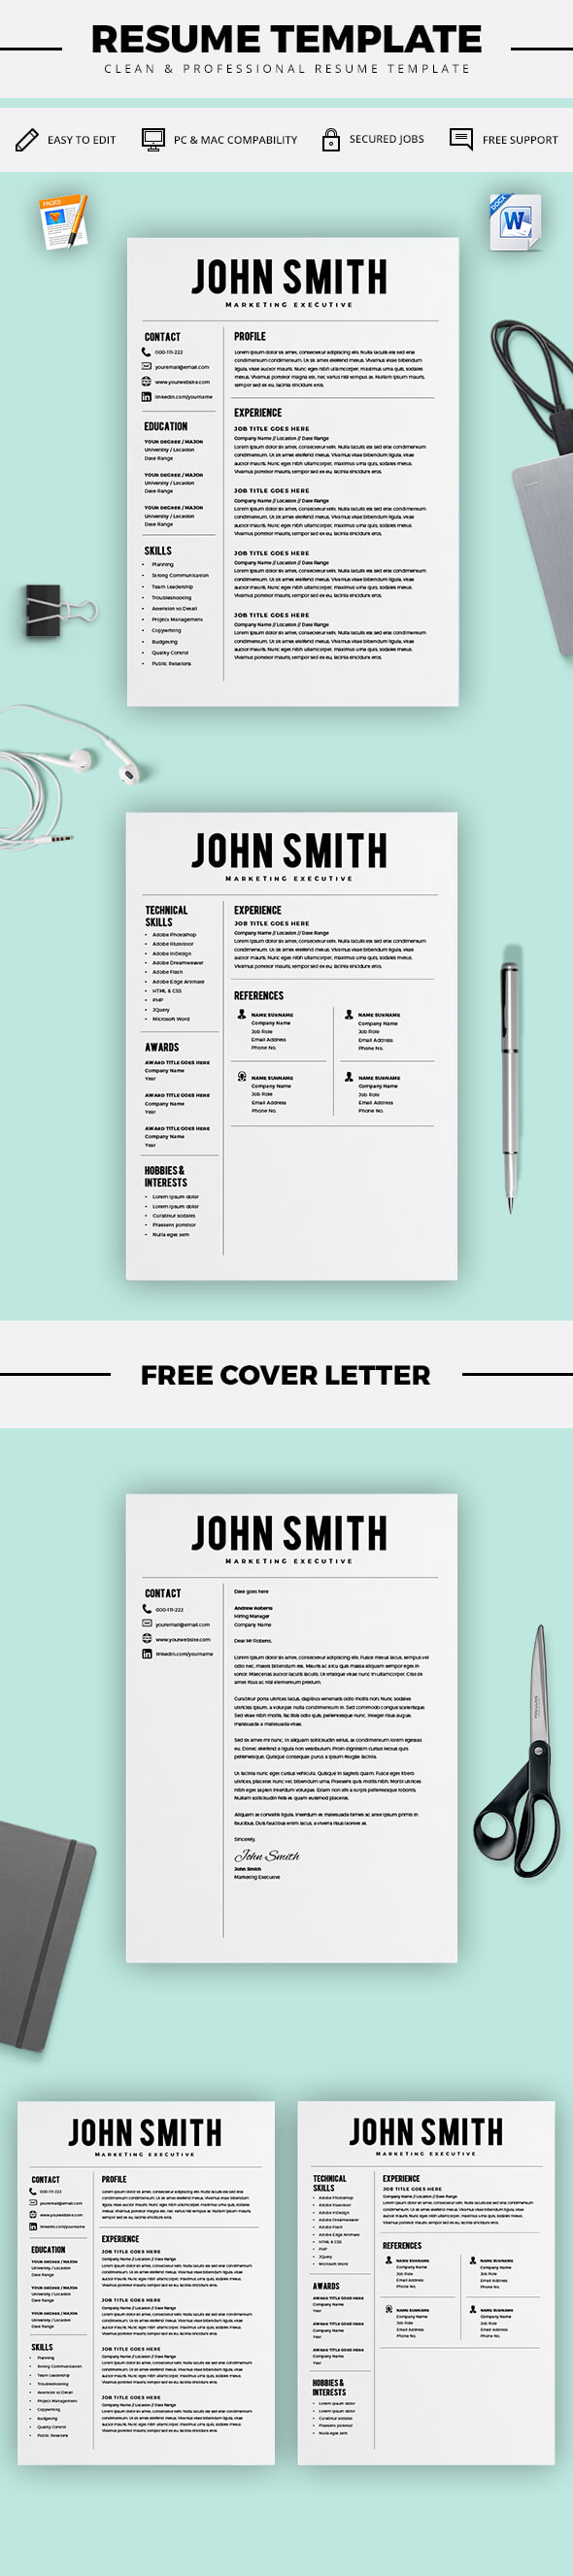 Professional Sales Resume Resume Template  Resume Builder  Cv Template  Free Cover Letter  Free Resume Builder App Word with Free Resume Templates Download For Microsoft Word Excel Resume Template  Resume Builder  Cv Template  Free Cover Letter  Ms Word  On Sales Associate Description For Resume Word